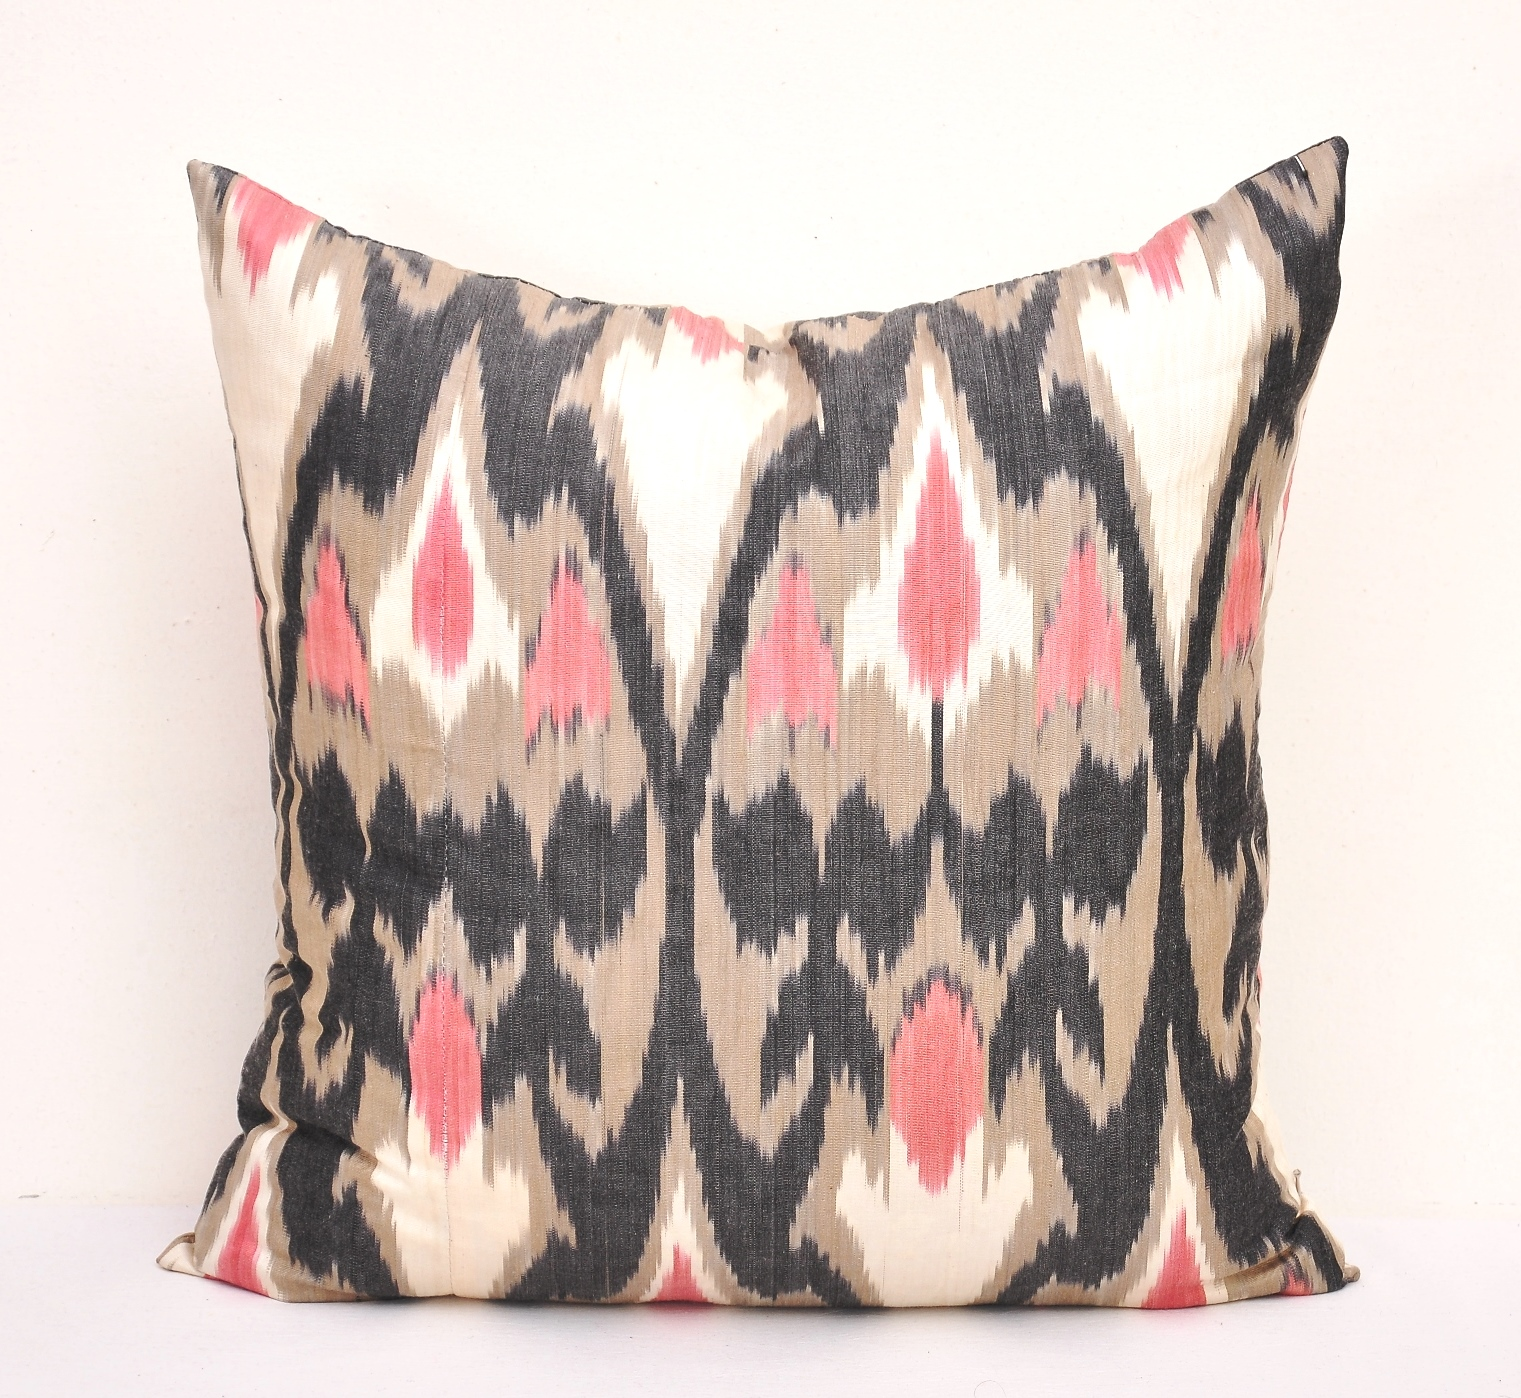 Affordable Decorative Throw Pillows : Bohemian Stylish Best Decorative Pillow Cheap Ikat Pillow UK